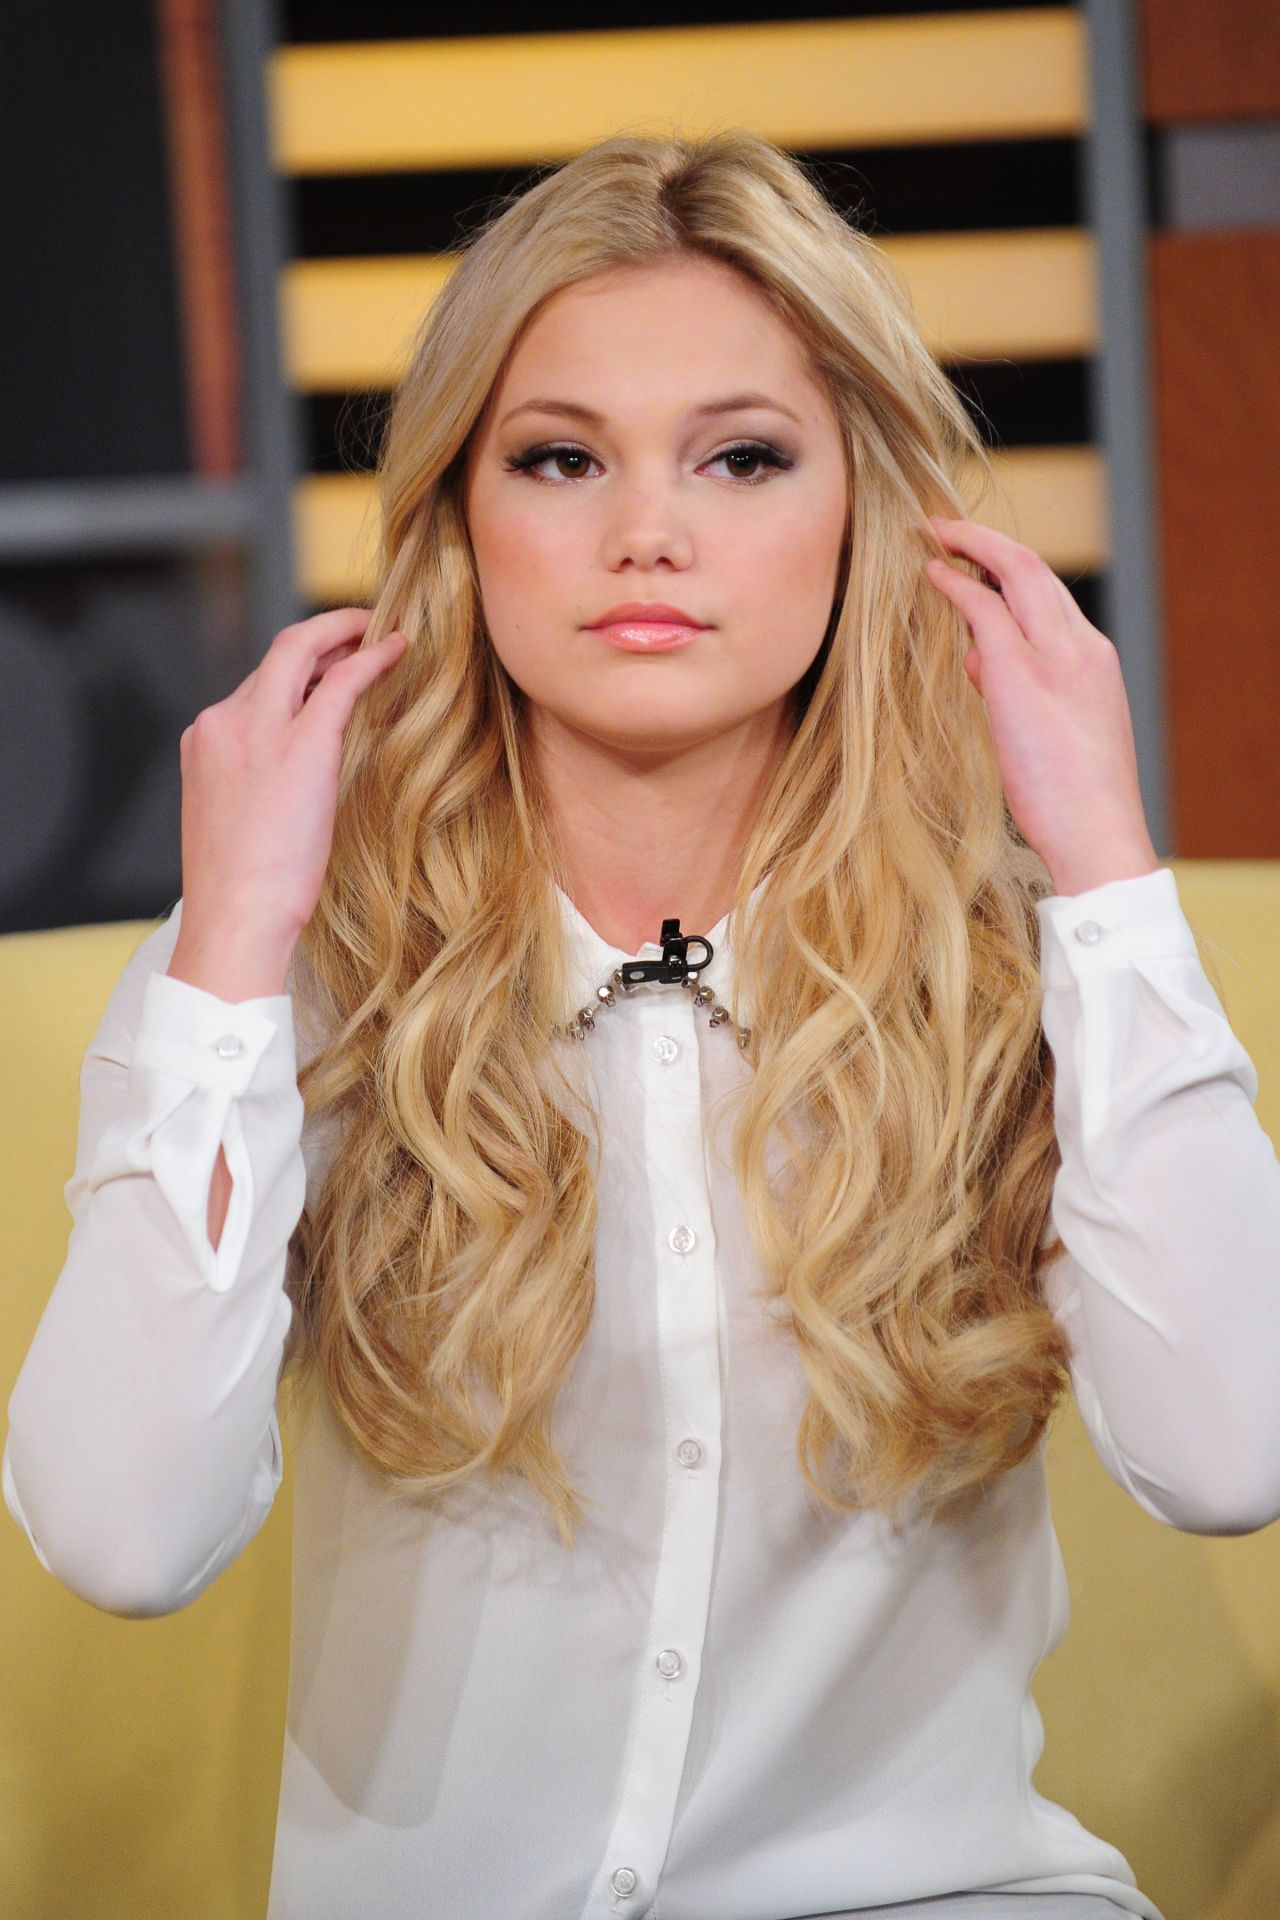 Fotos De Olivia Holt olivia holt at 'good day new york' in nyc, march 2015